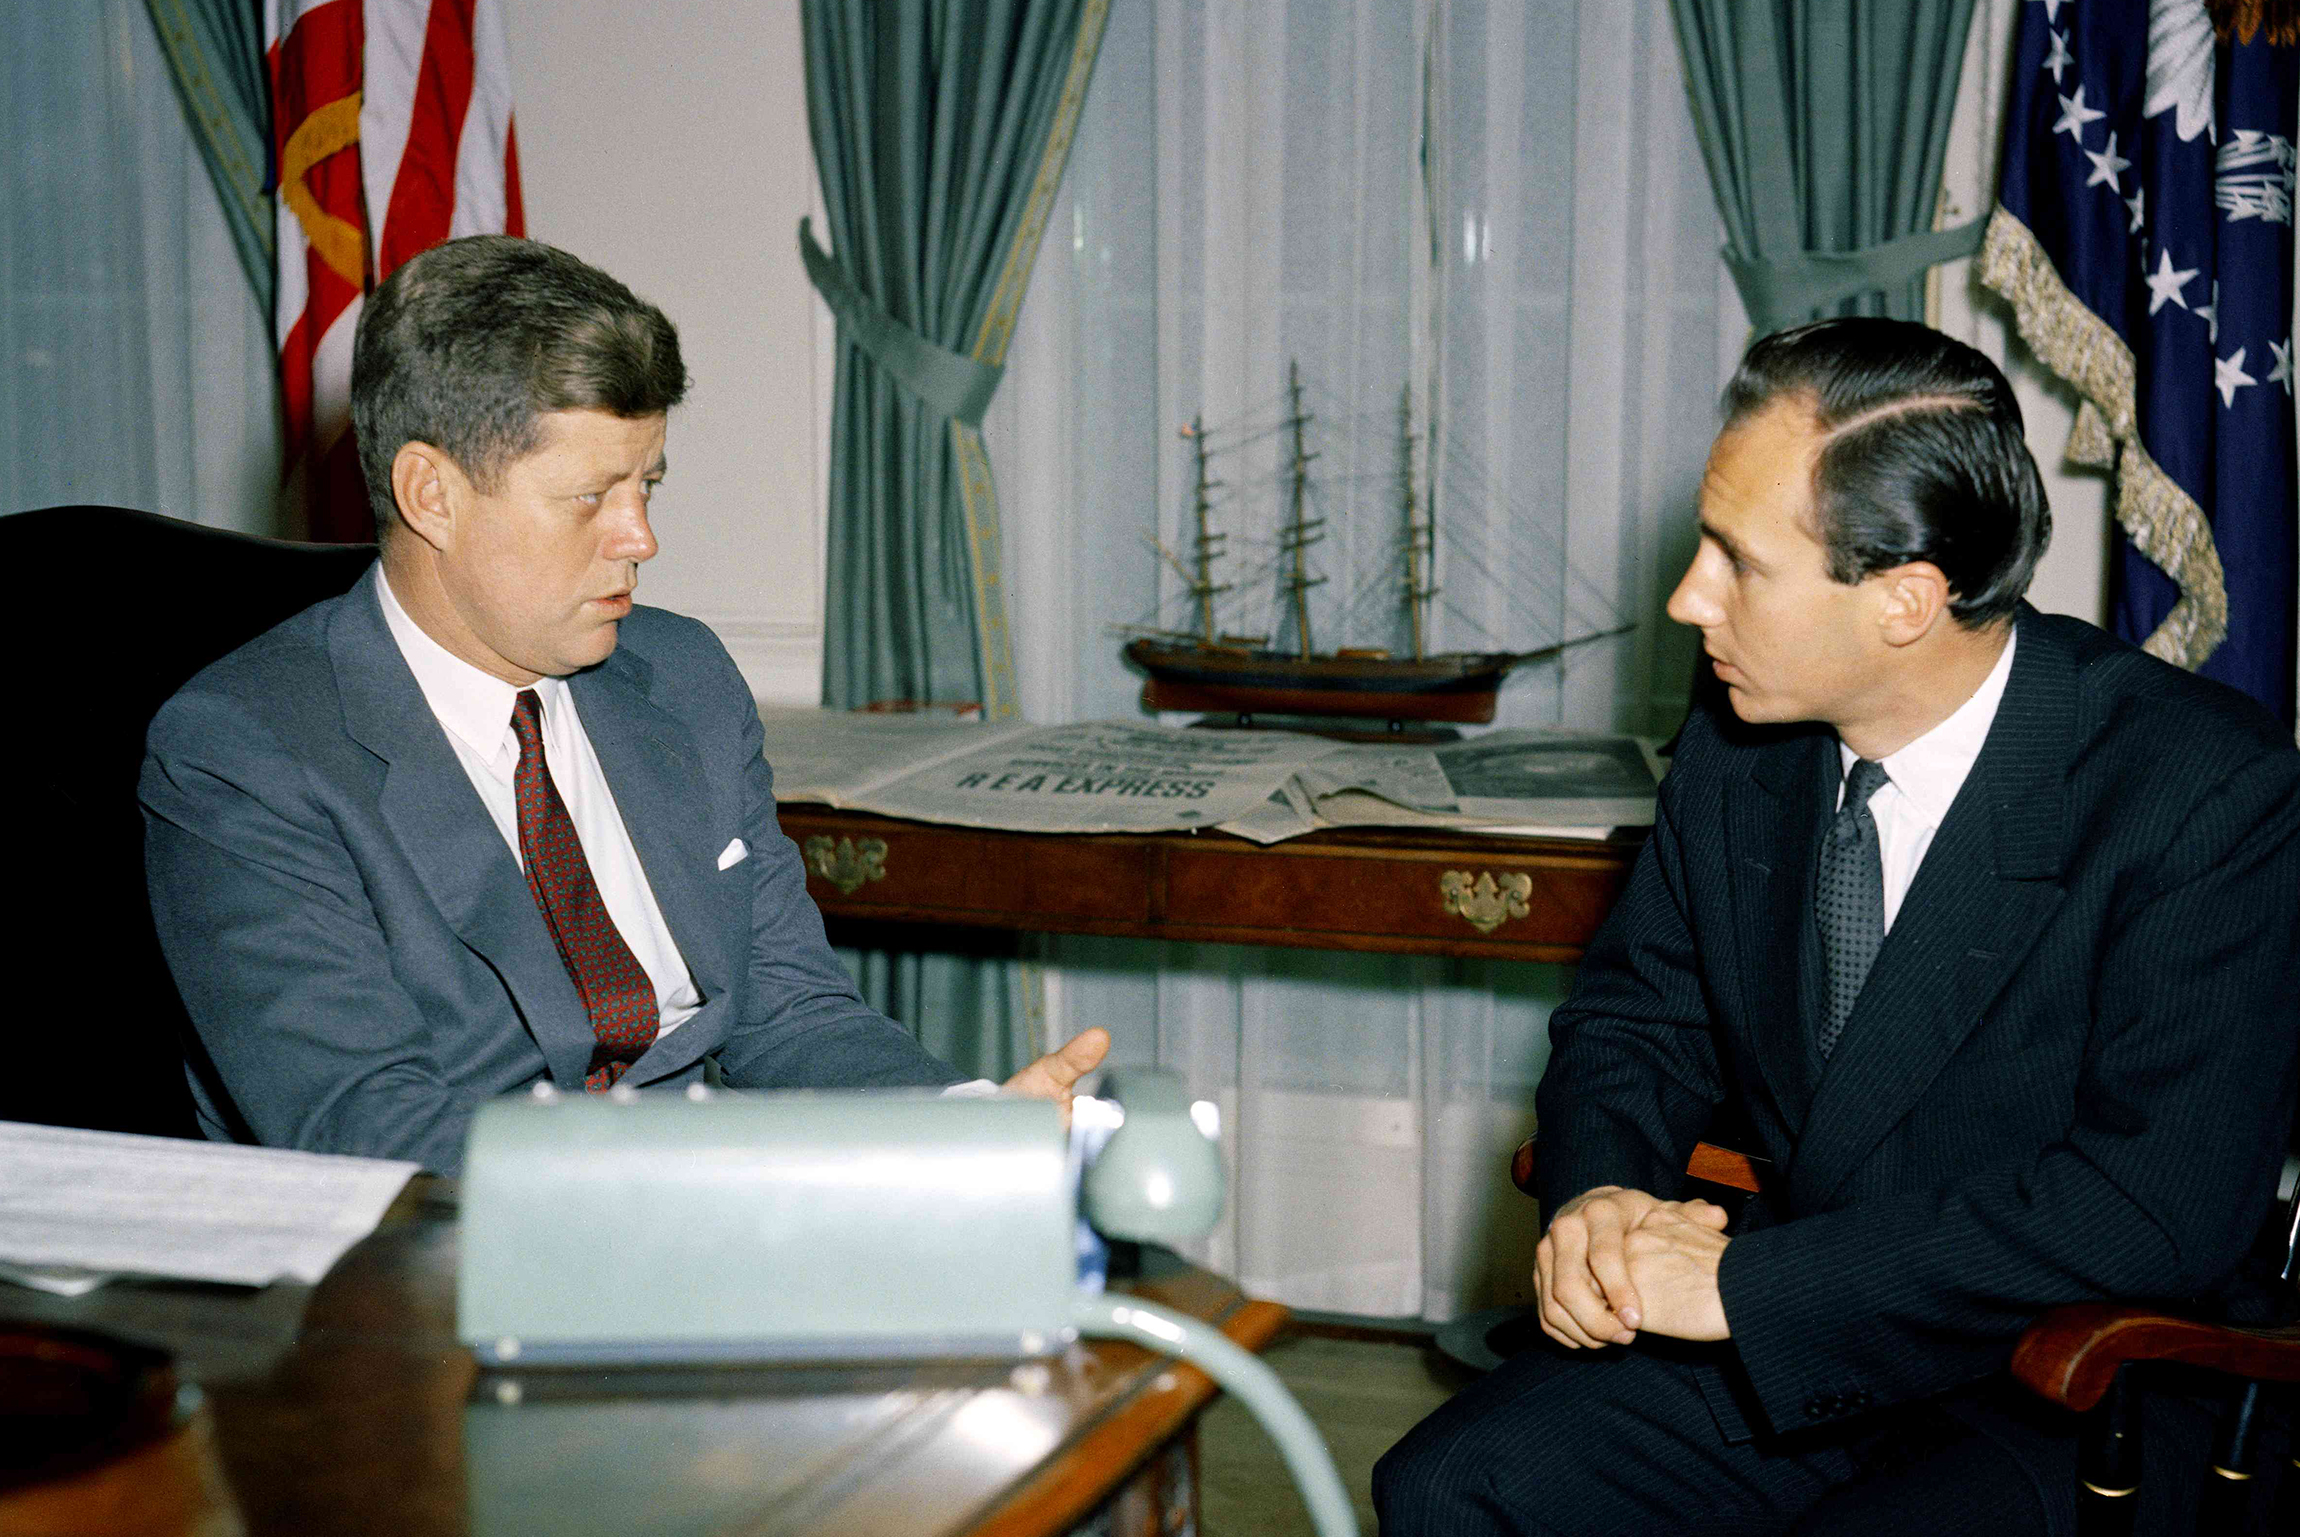 Meeting with President Kennedy in the Oval Office at the White House in 1961.